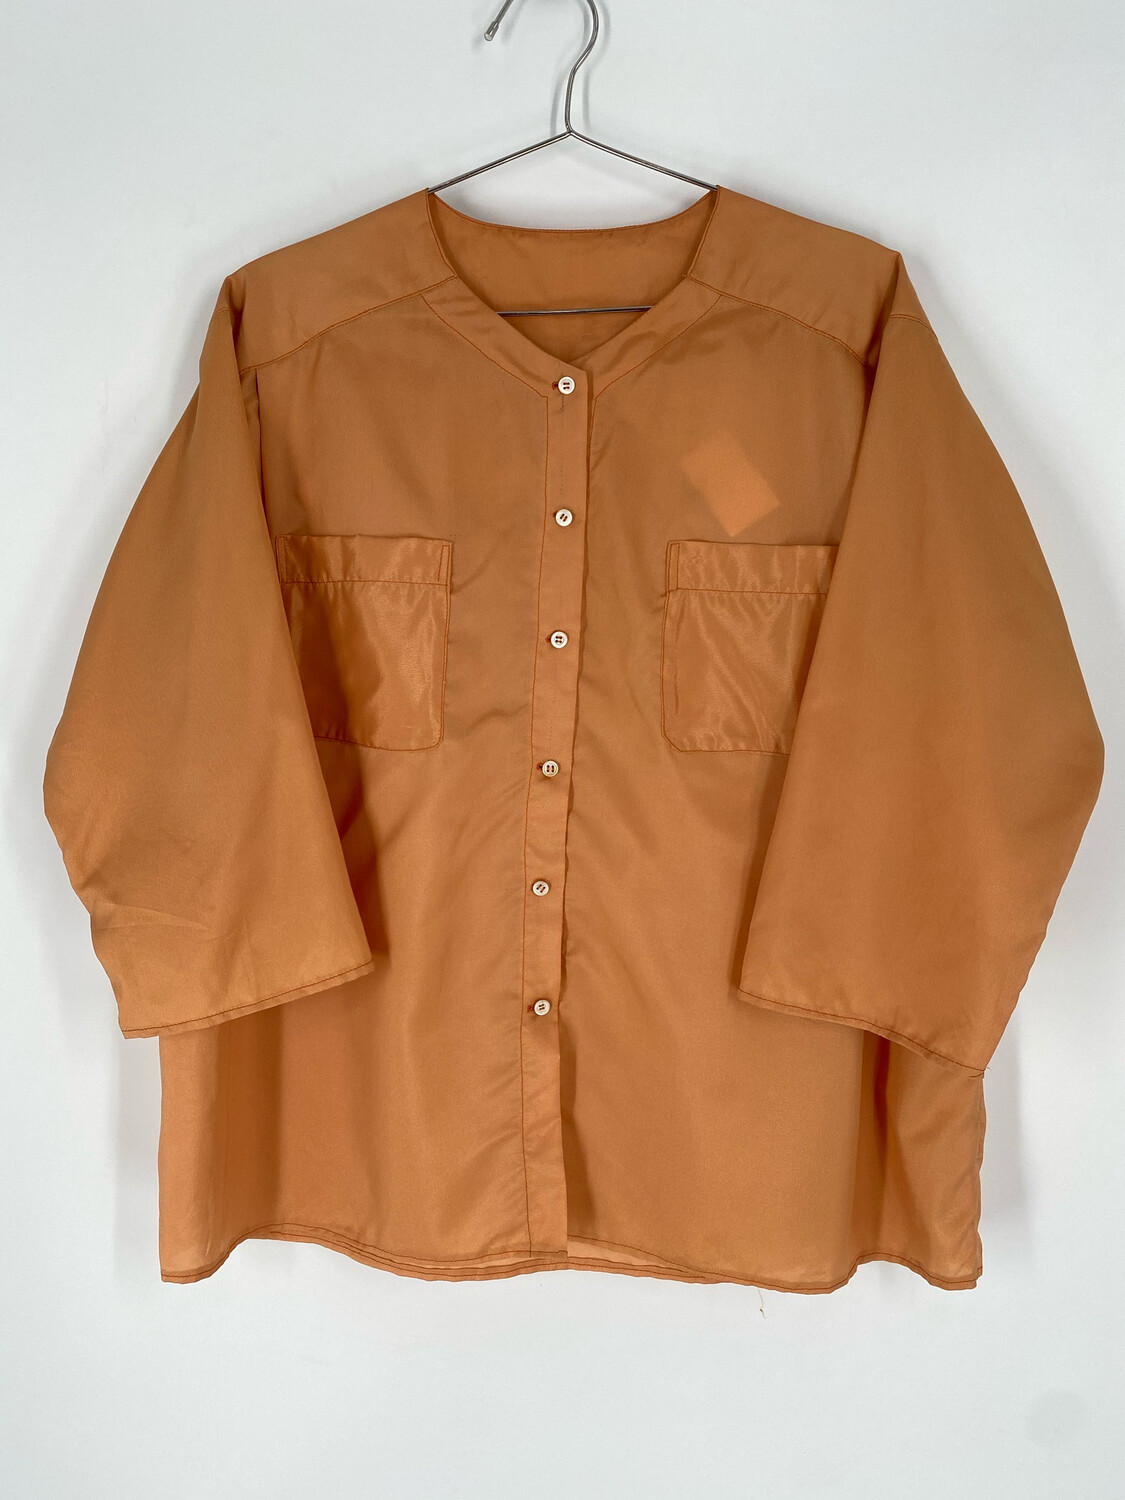 Burnt Orange Long Sleeve Button Up Size XL